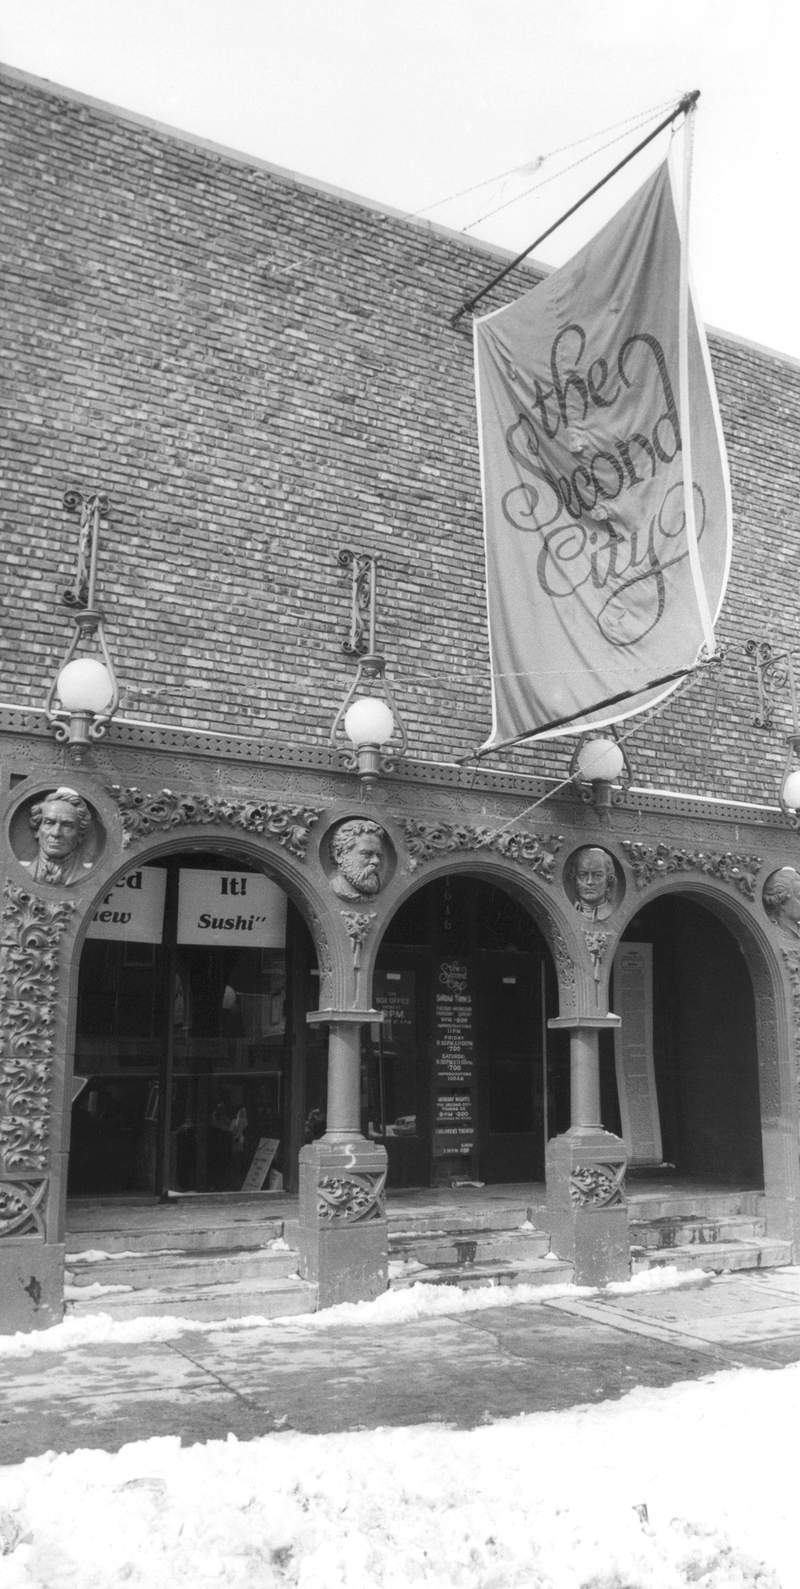 FILE - This March 6, 1982, file photo, shows the home of the famed improvisational troupe, Second City, in Chicago's Old Town section. Chicagos Second City comedy theater is up for sale. The sale, announced Tuesday, Oct. 6, 2020, is the second in the companys 60-year history. (AP Photo/Fred Jewell, File)